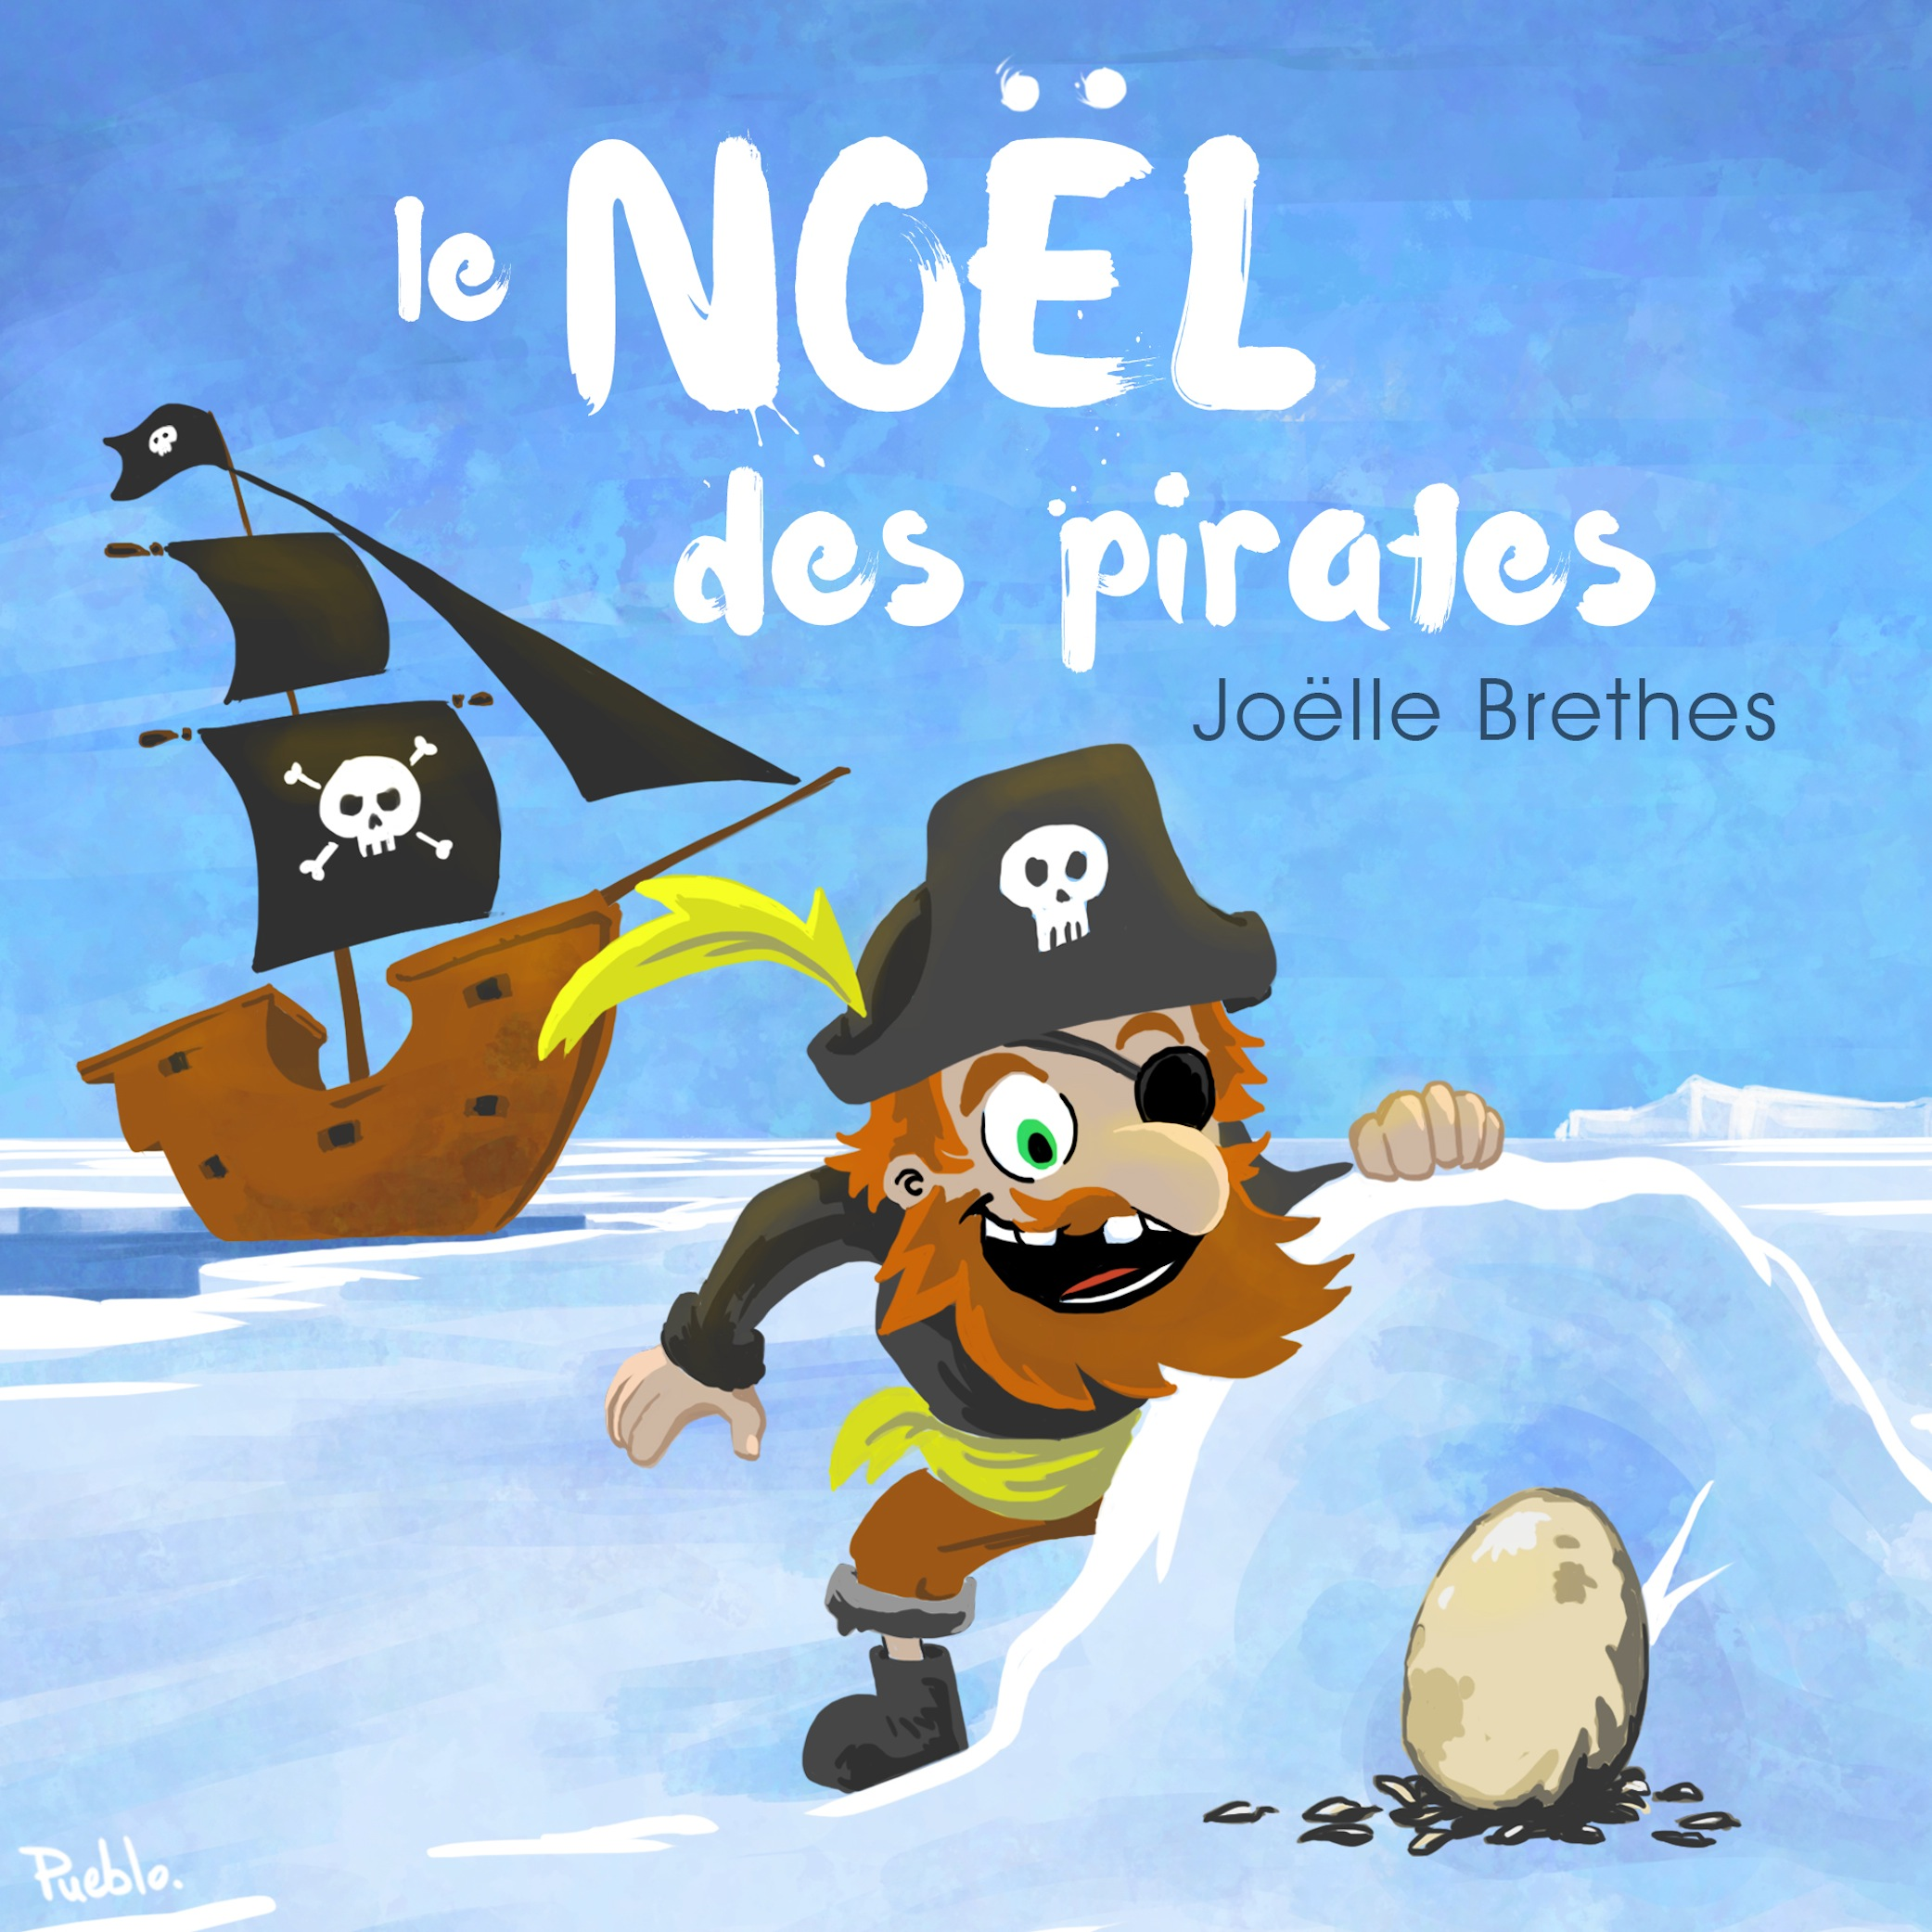 Le Noël des pirates